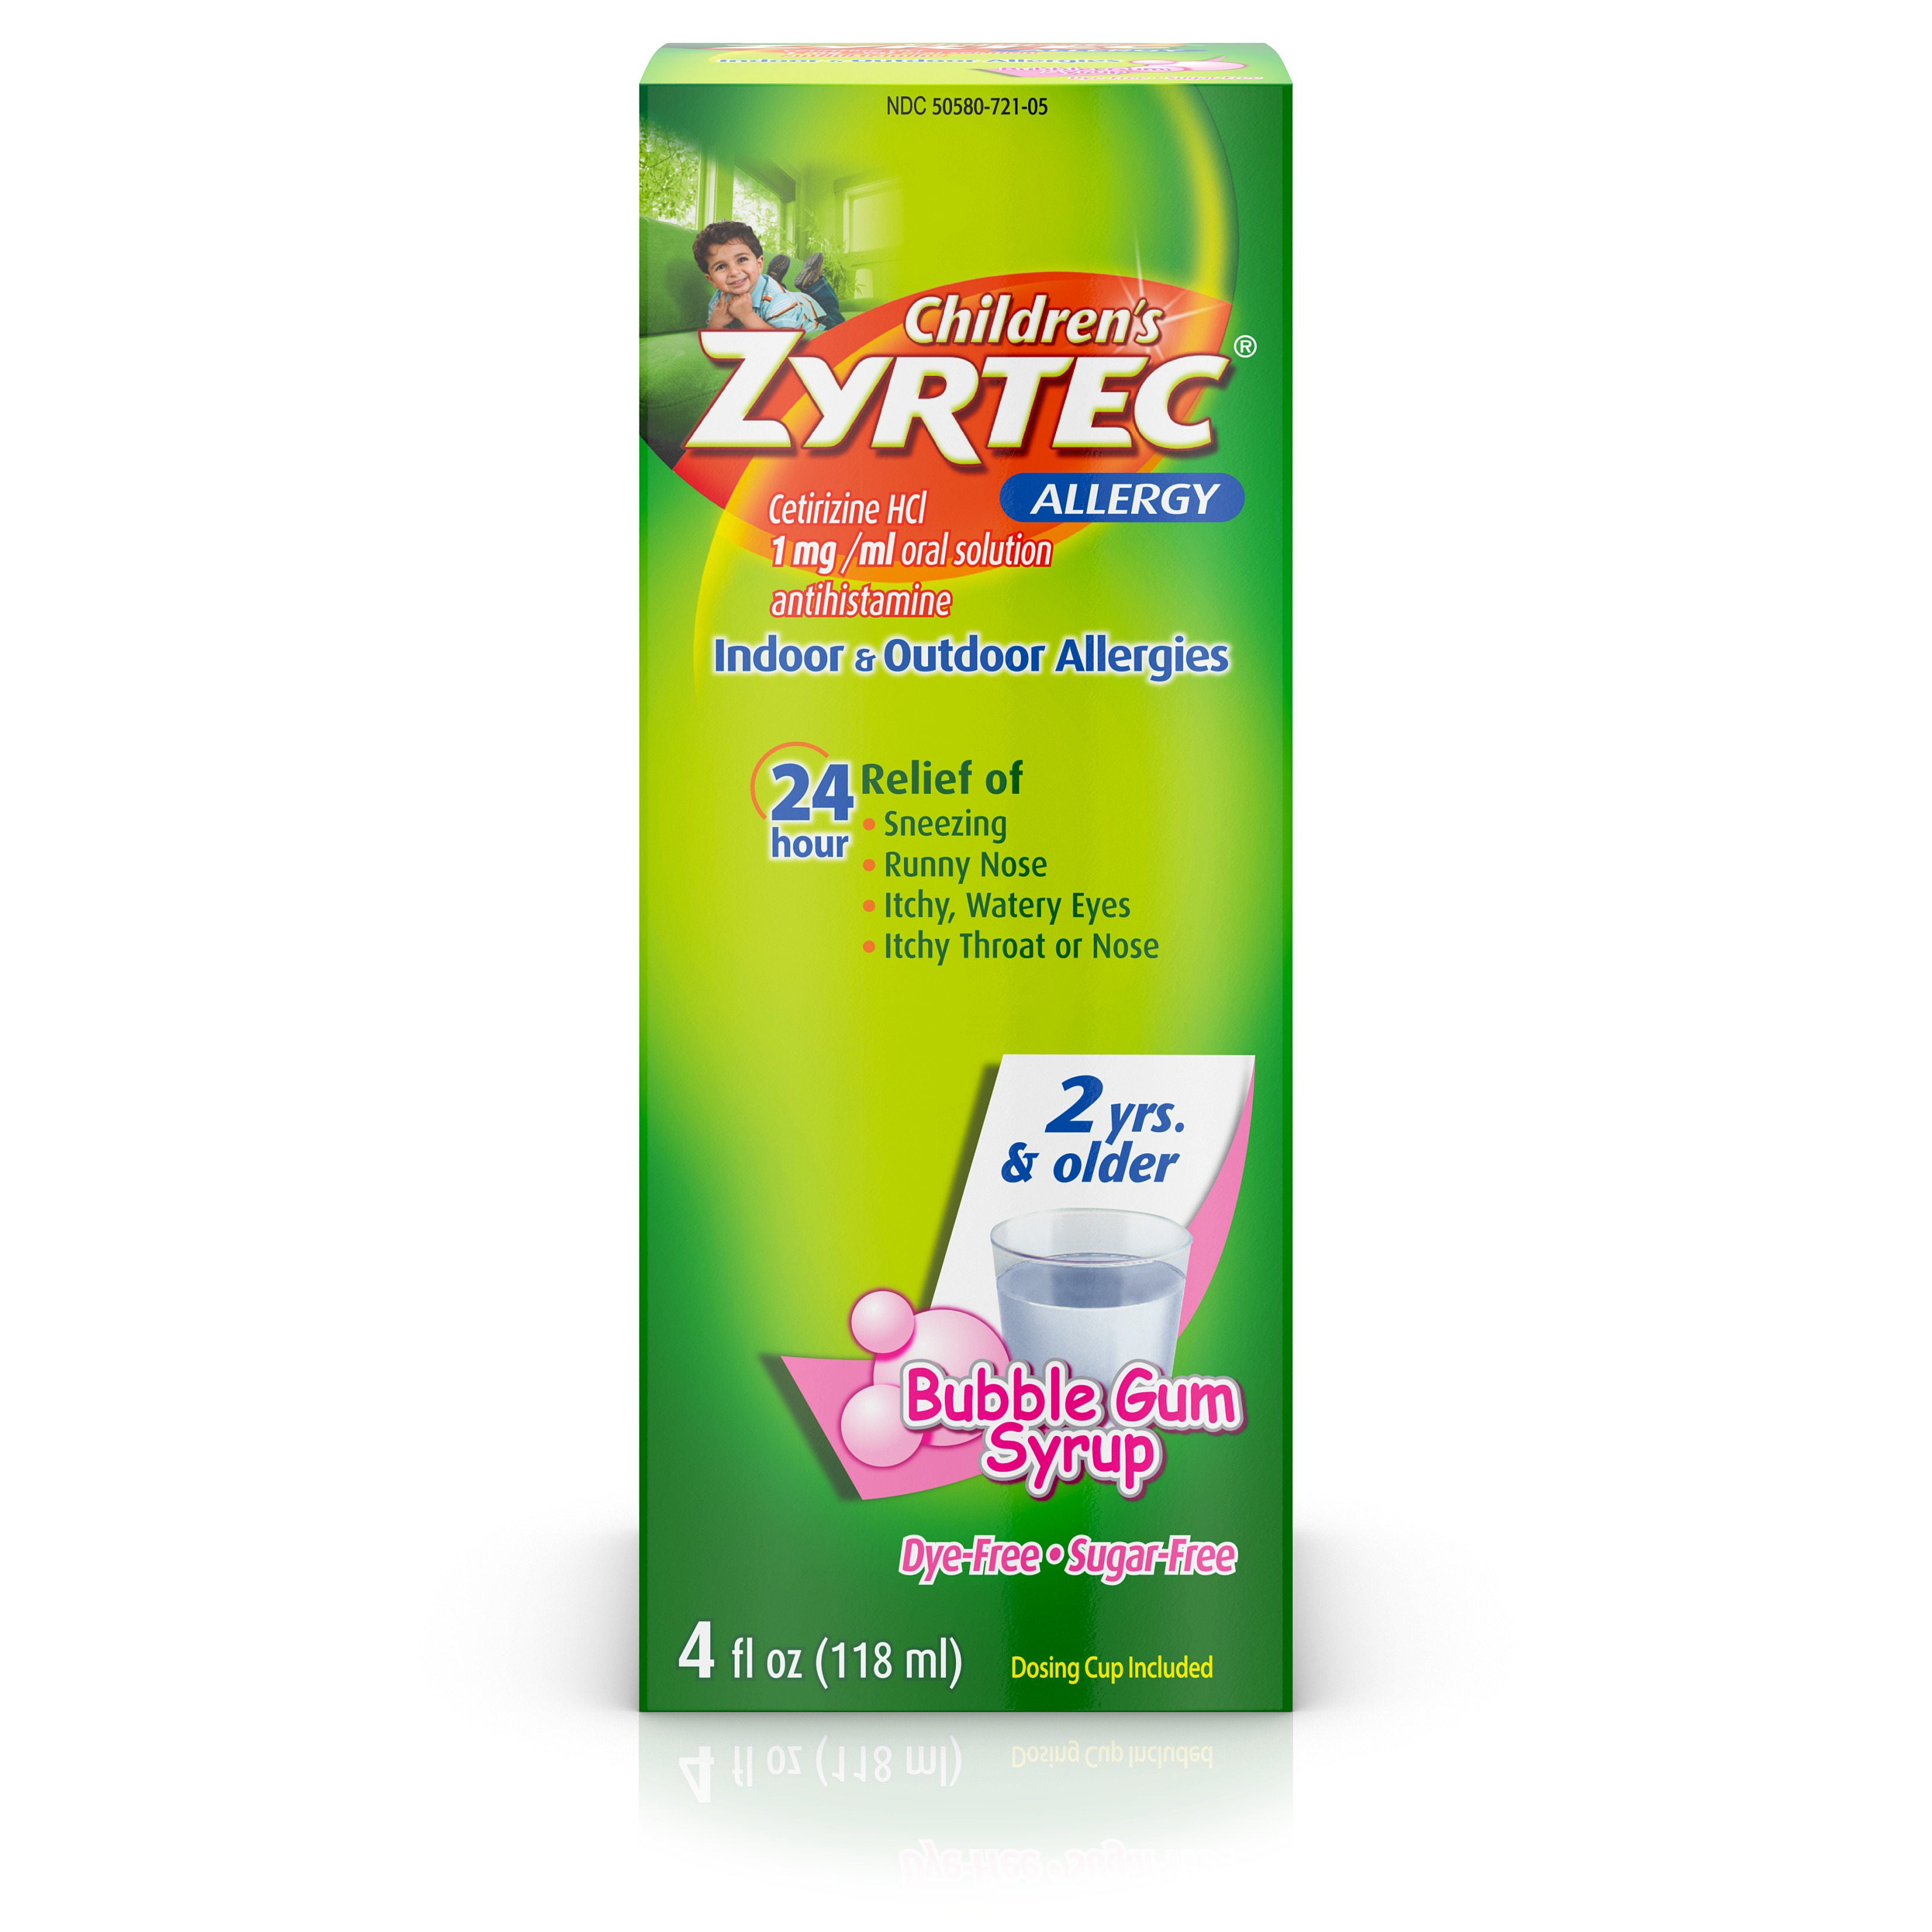 Children's Zyrtec Allergy Syrup, Dye-Free, Sugar-Free Bubble Gum, 4 Oz